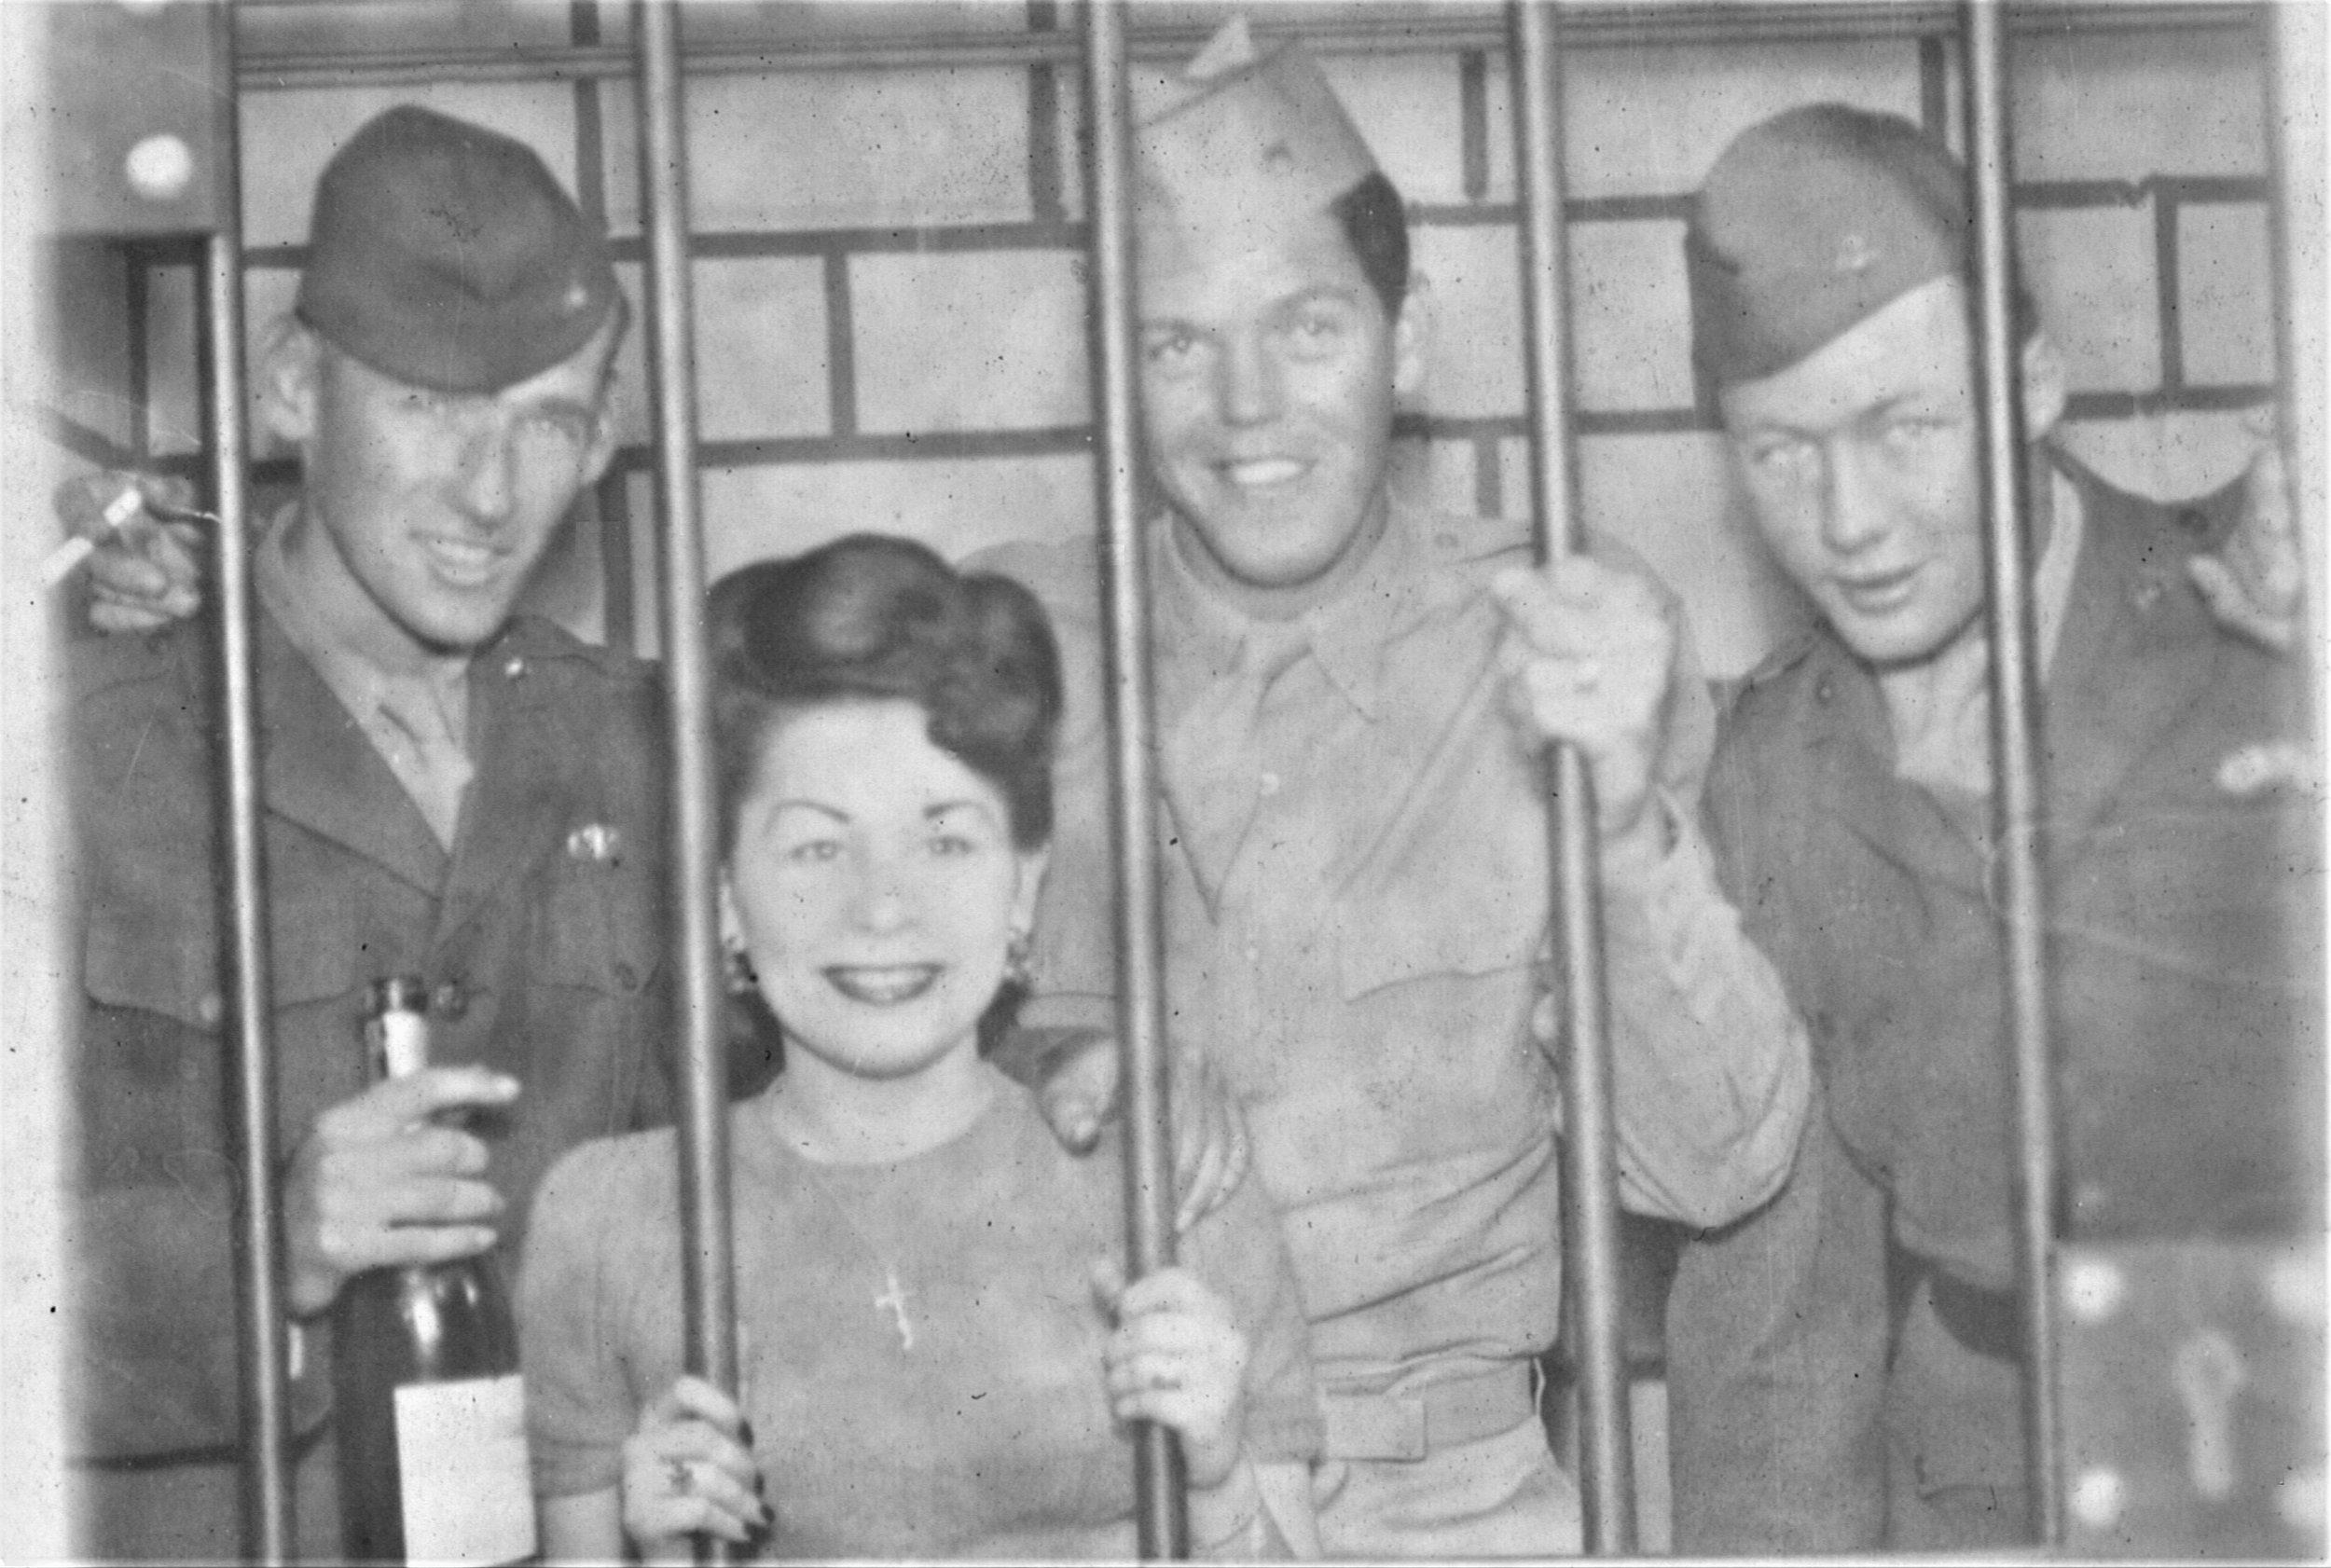 On leave and living it up in Los Angeles, CA, August 1944 (L to R): Frank Conlin, an anonymous friend, Bill Pawley, and Mike Kelly.